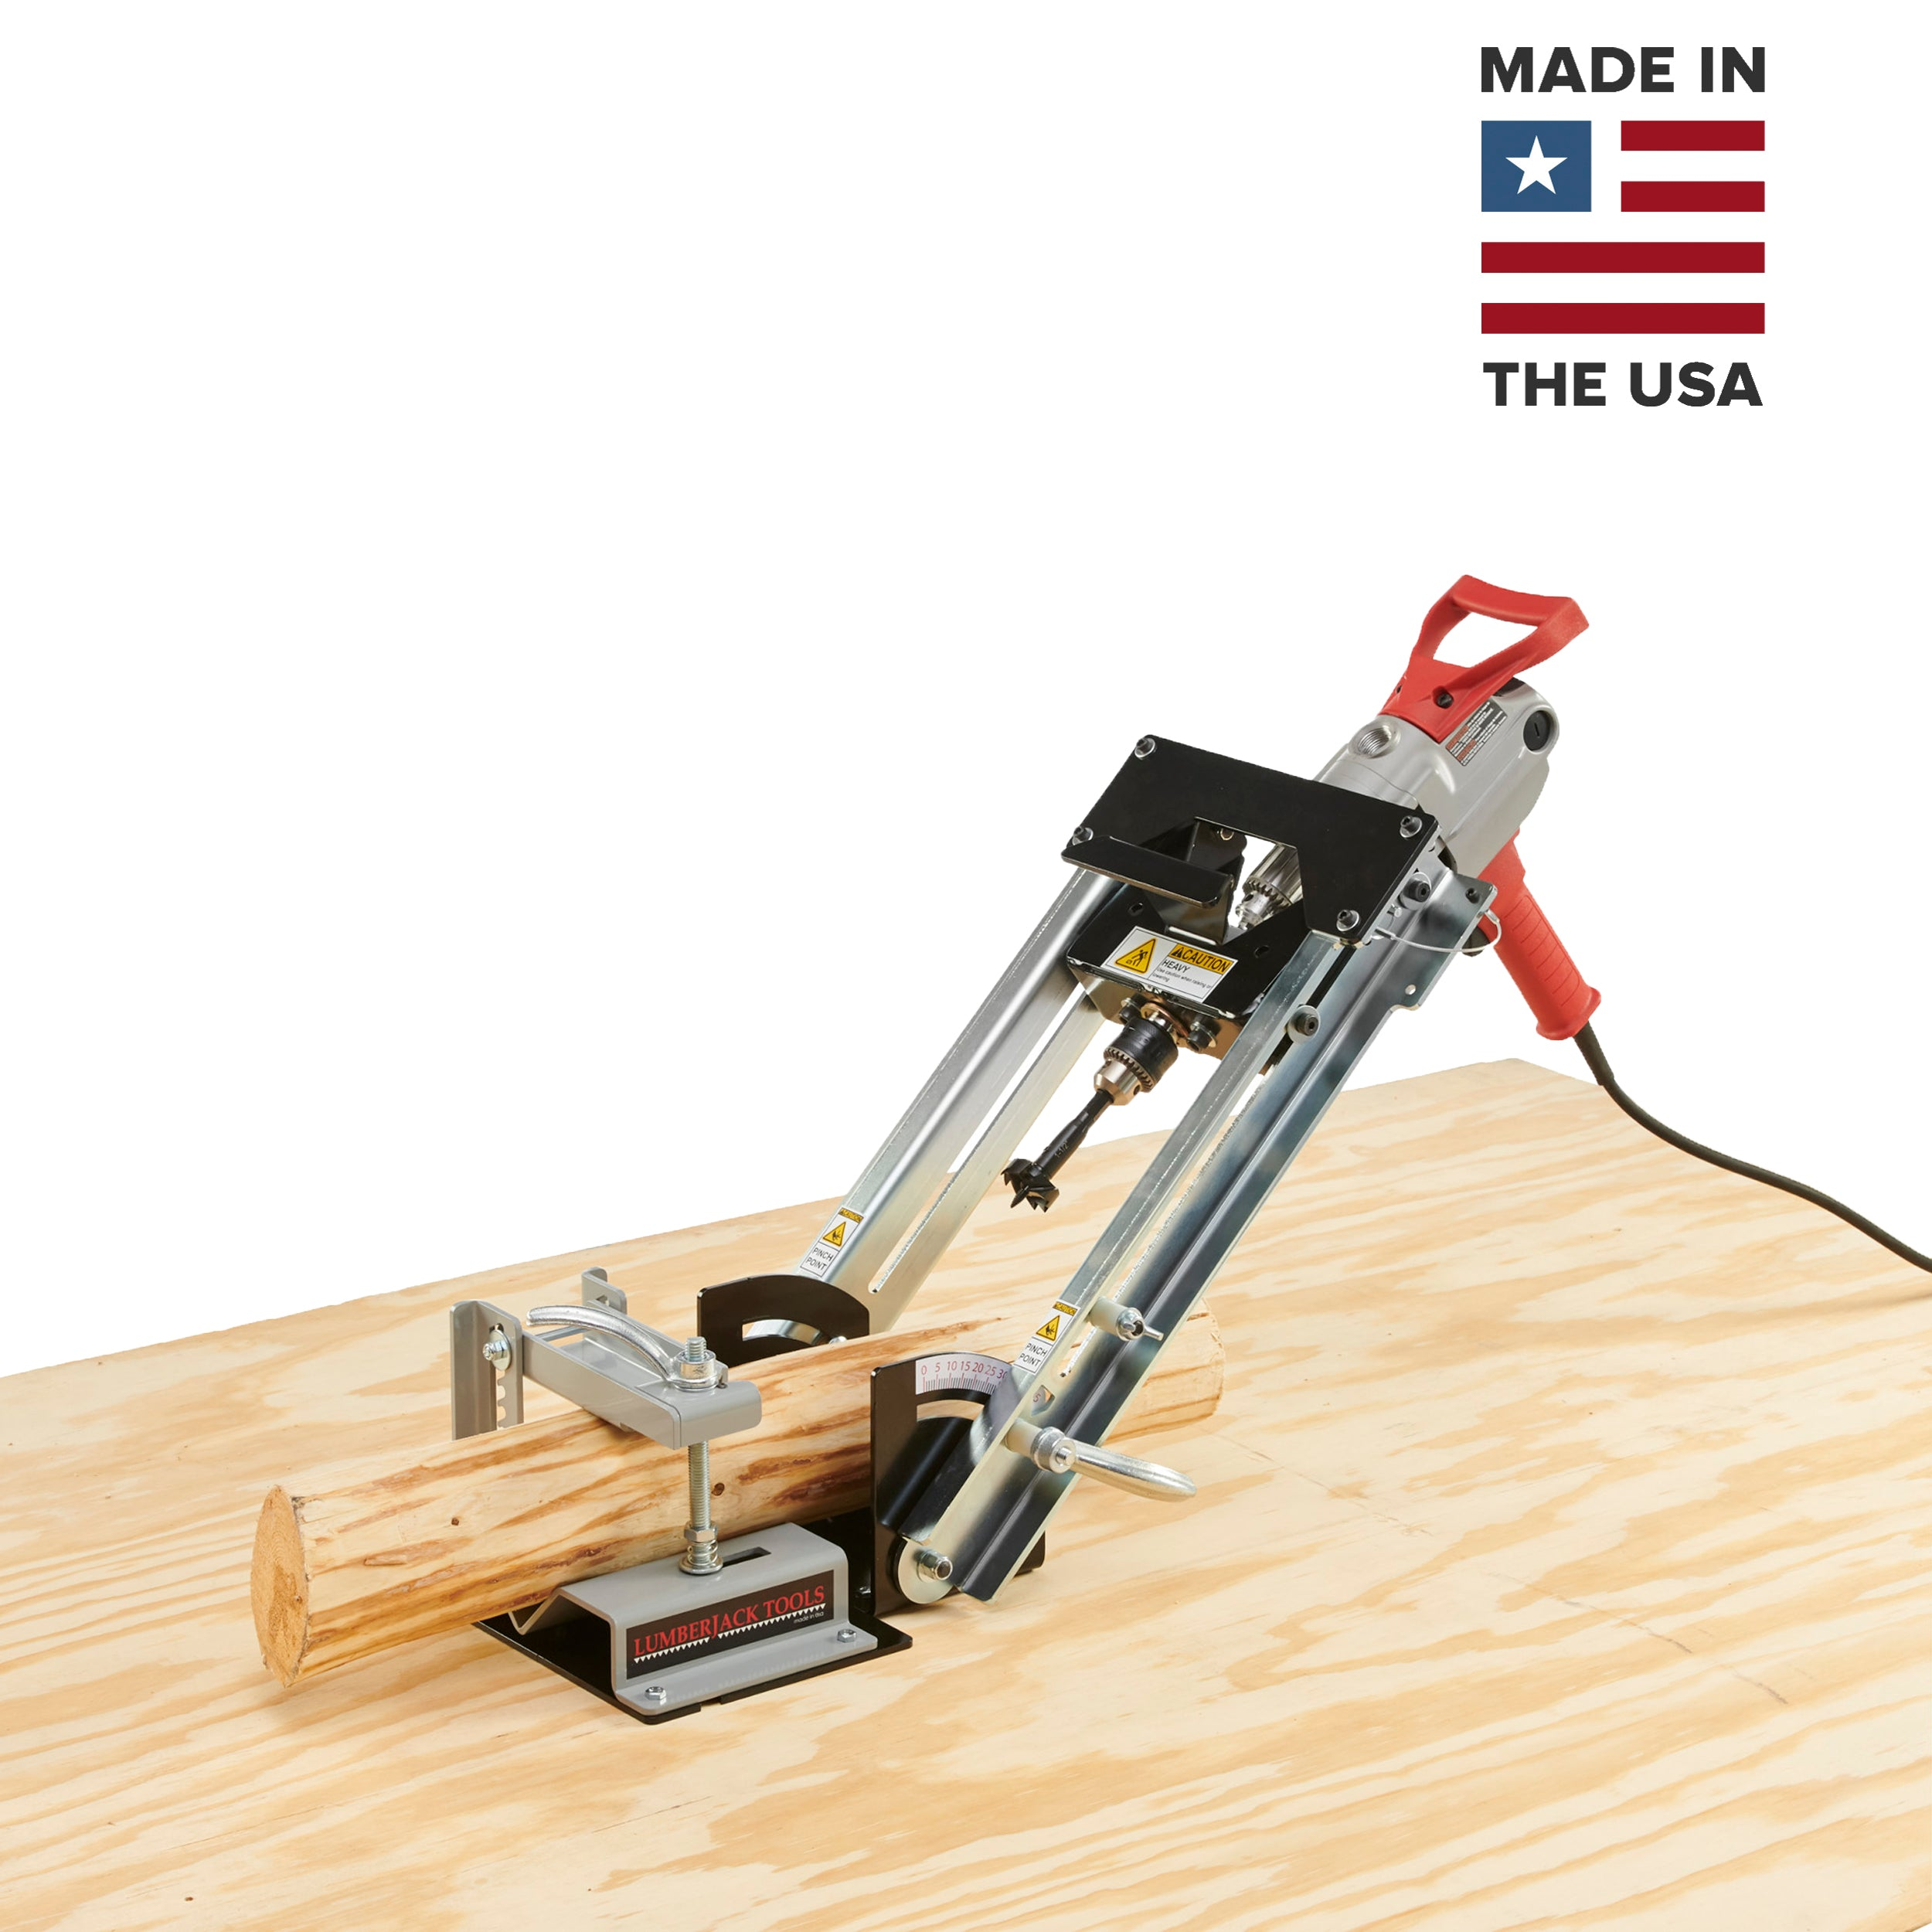 New Lumberjacktool 10 Trade Level Table Saw With Powerful 1500w Motor For Tradesman Ambitious Diy Enthusiasts Bit Ly Ts254el